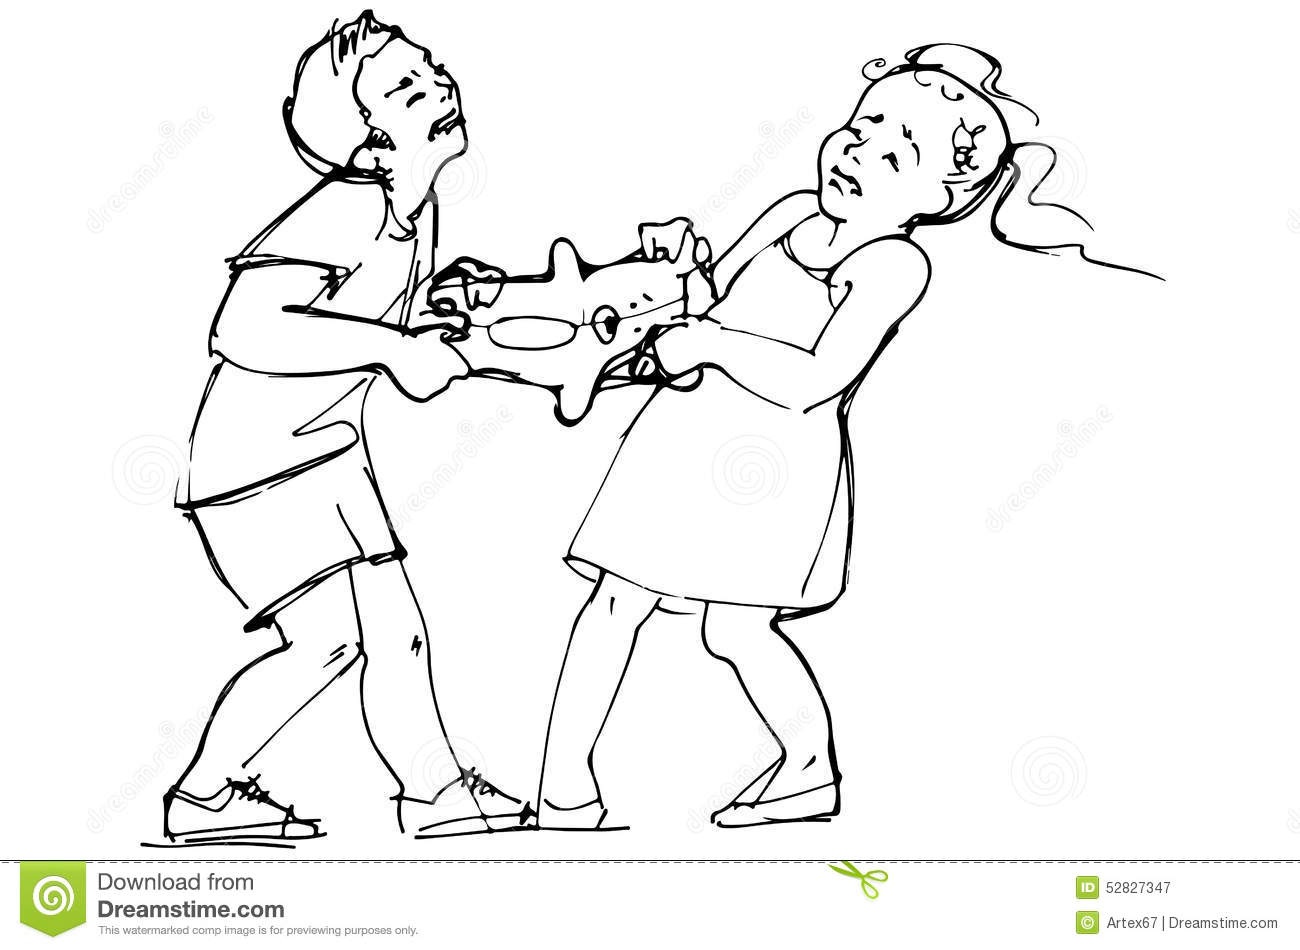 Sketch Of Boy And Girl Children Are Fighting Over A Toy